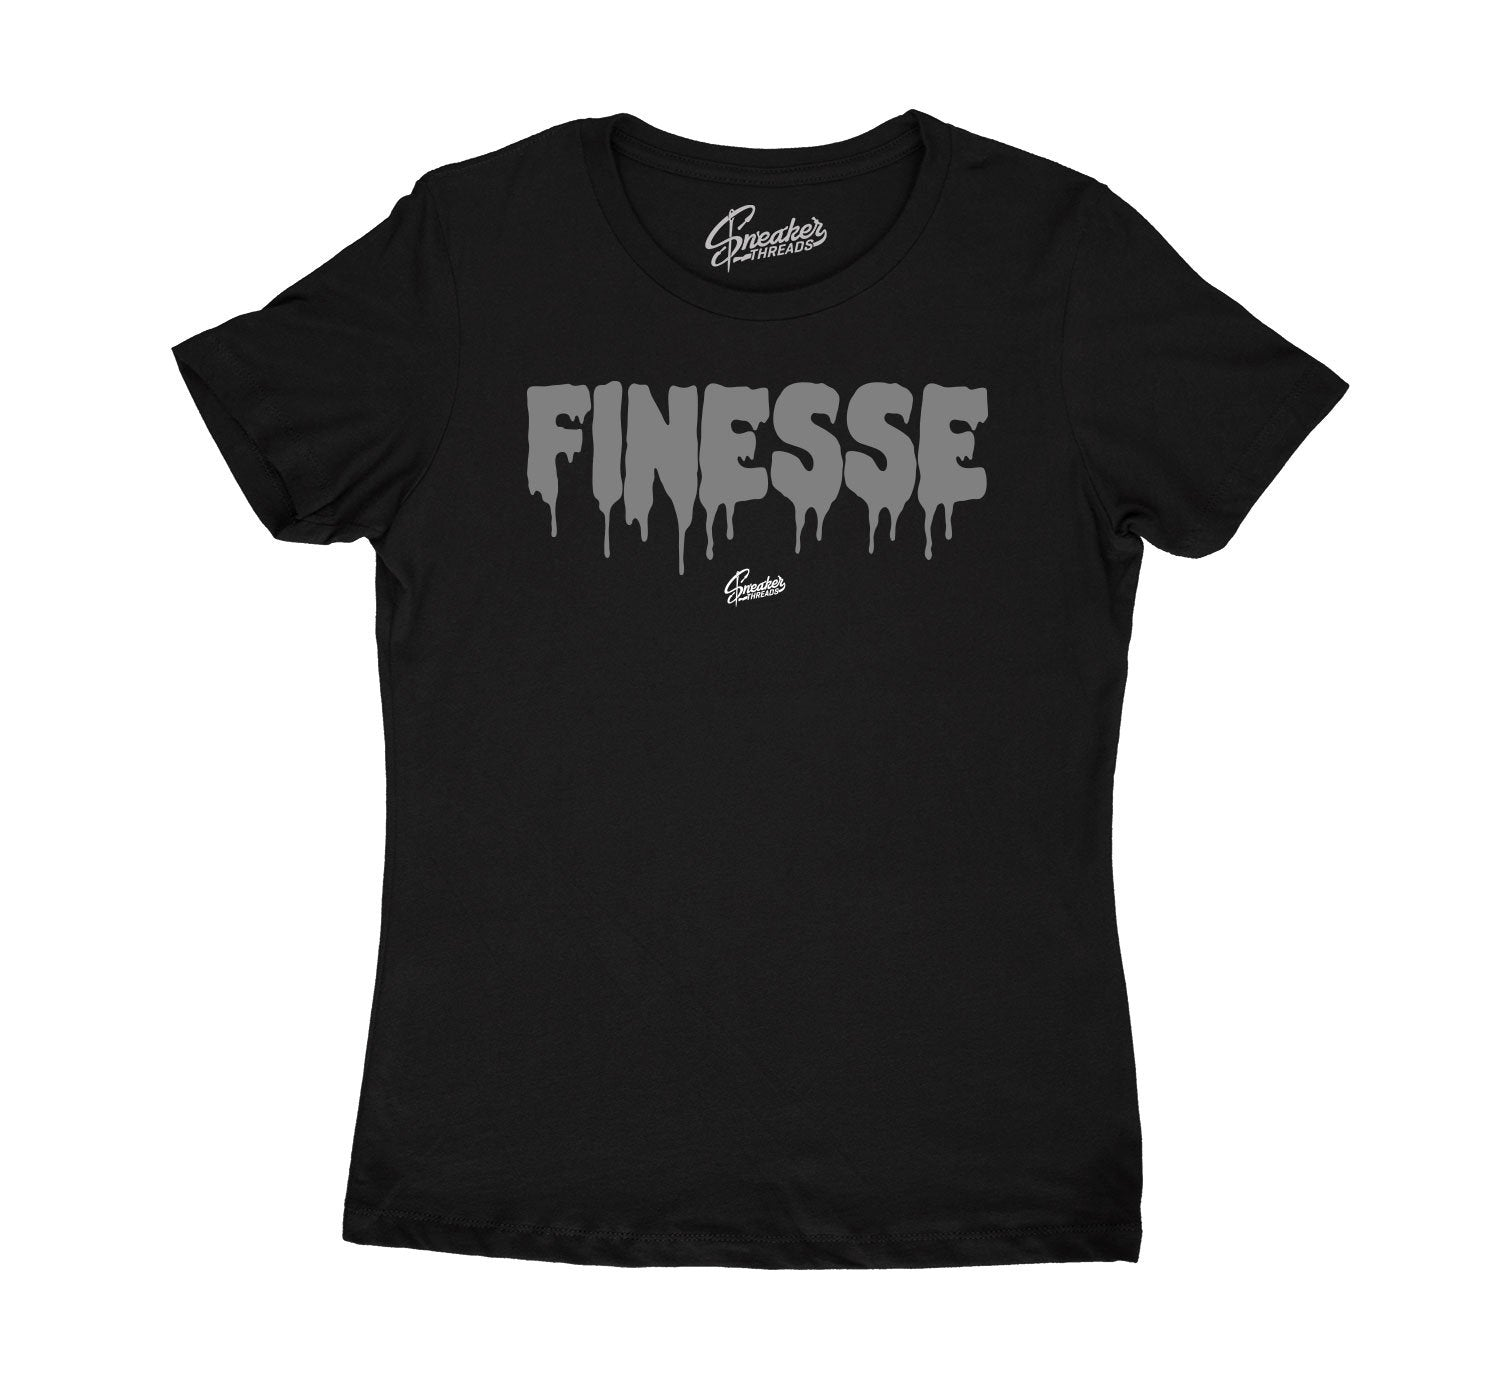 Jordan 4 black cat sneakers that match ladies t shirt collection